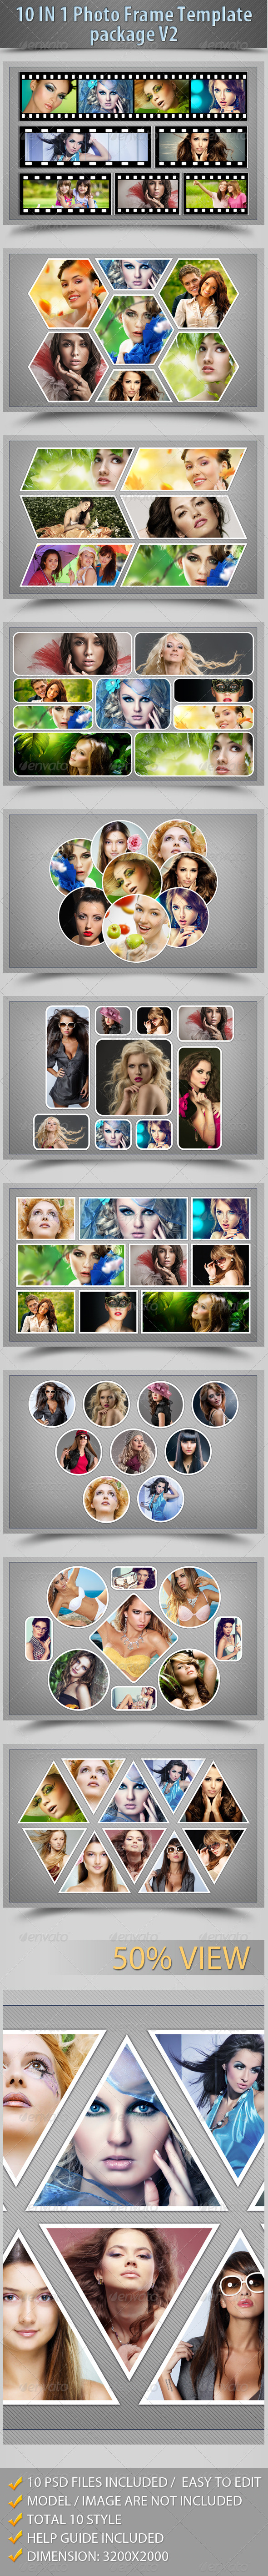 GraphicRiver 10 In 1 Photo Frame Template Package V2 6111644